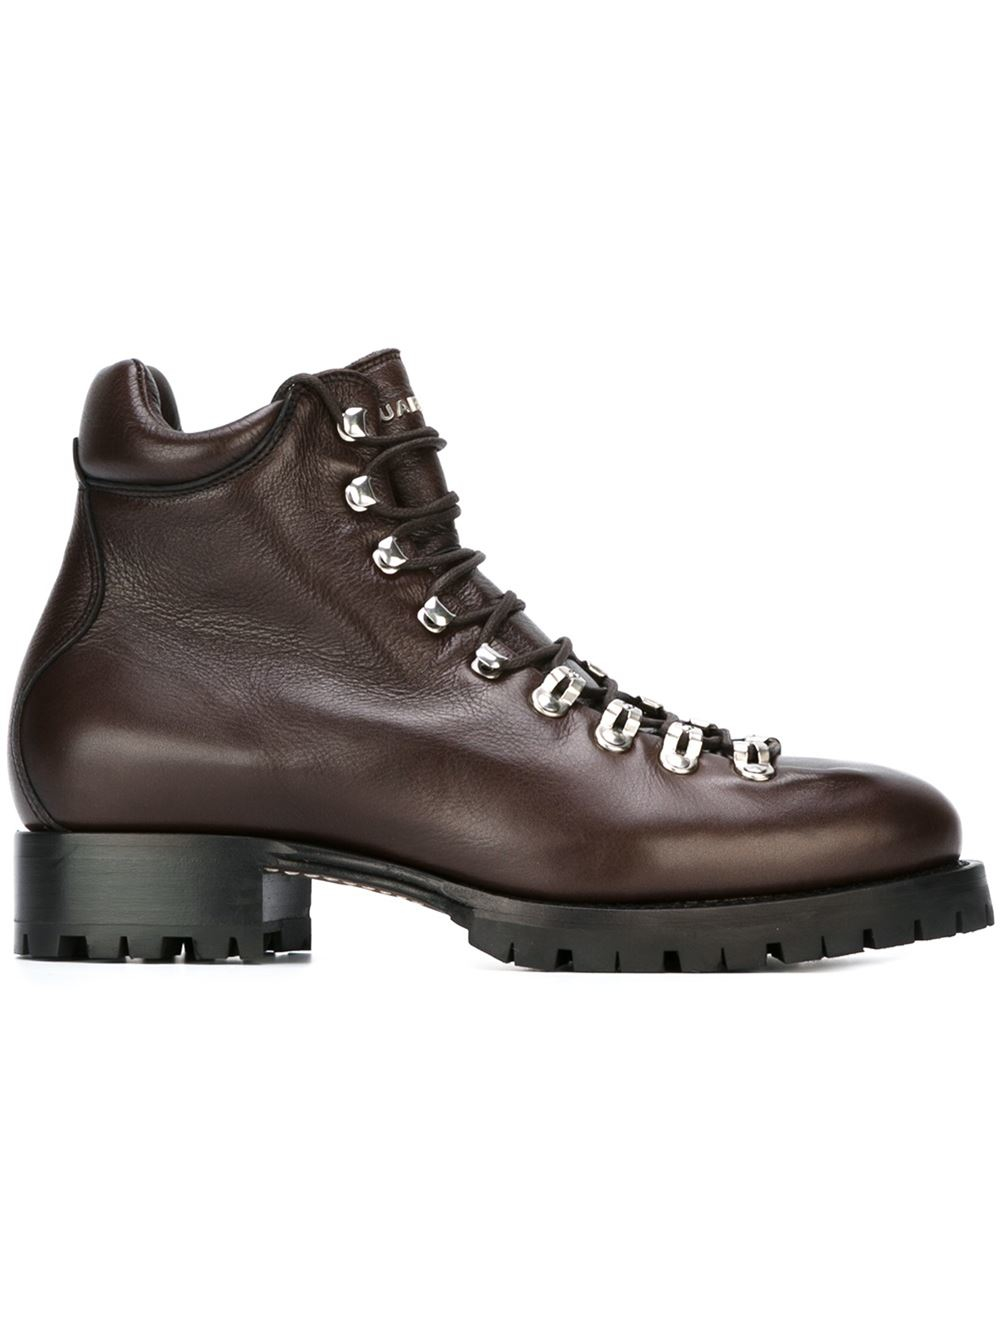 dsquared 178 lace up boots in brown for lyst